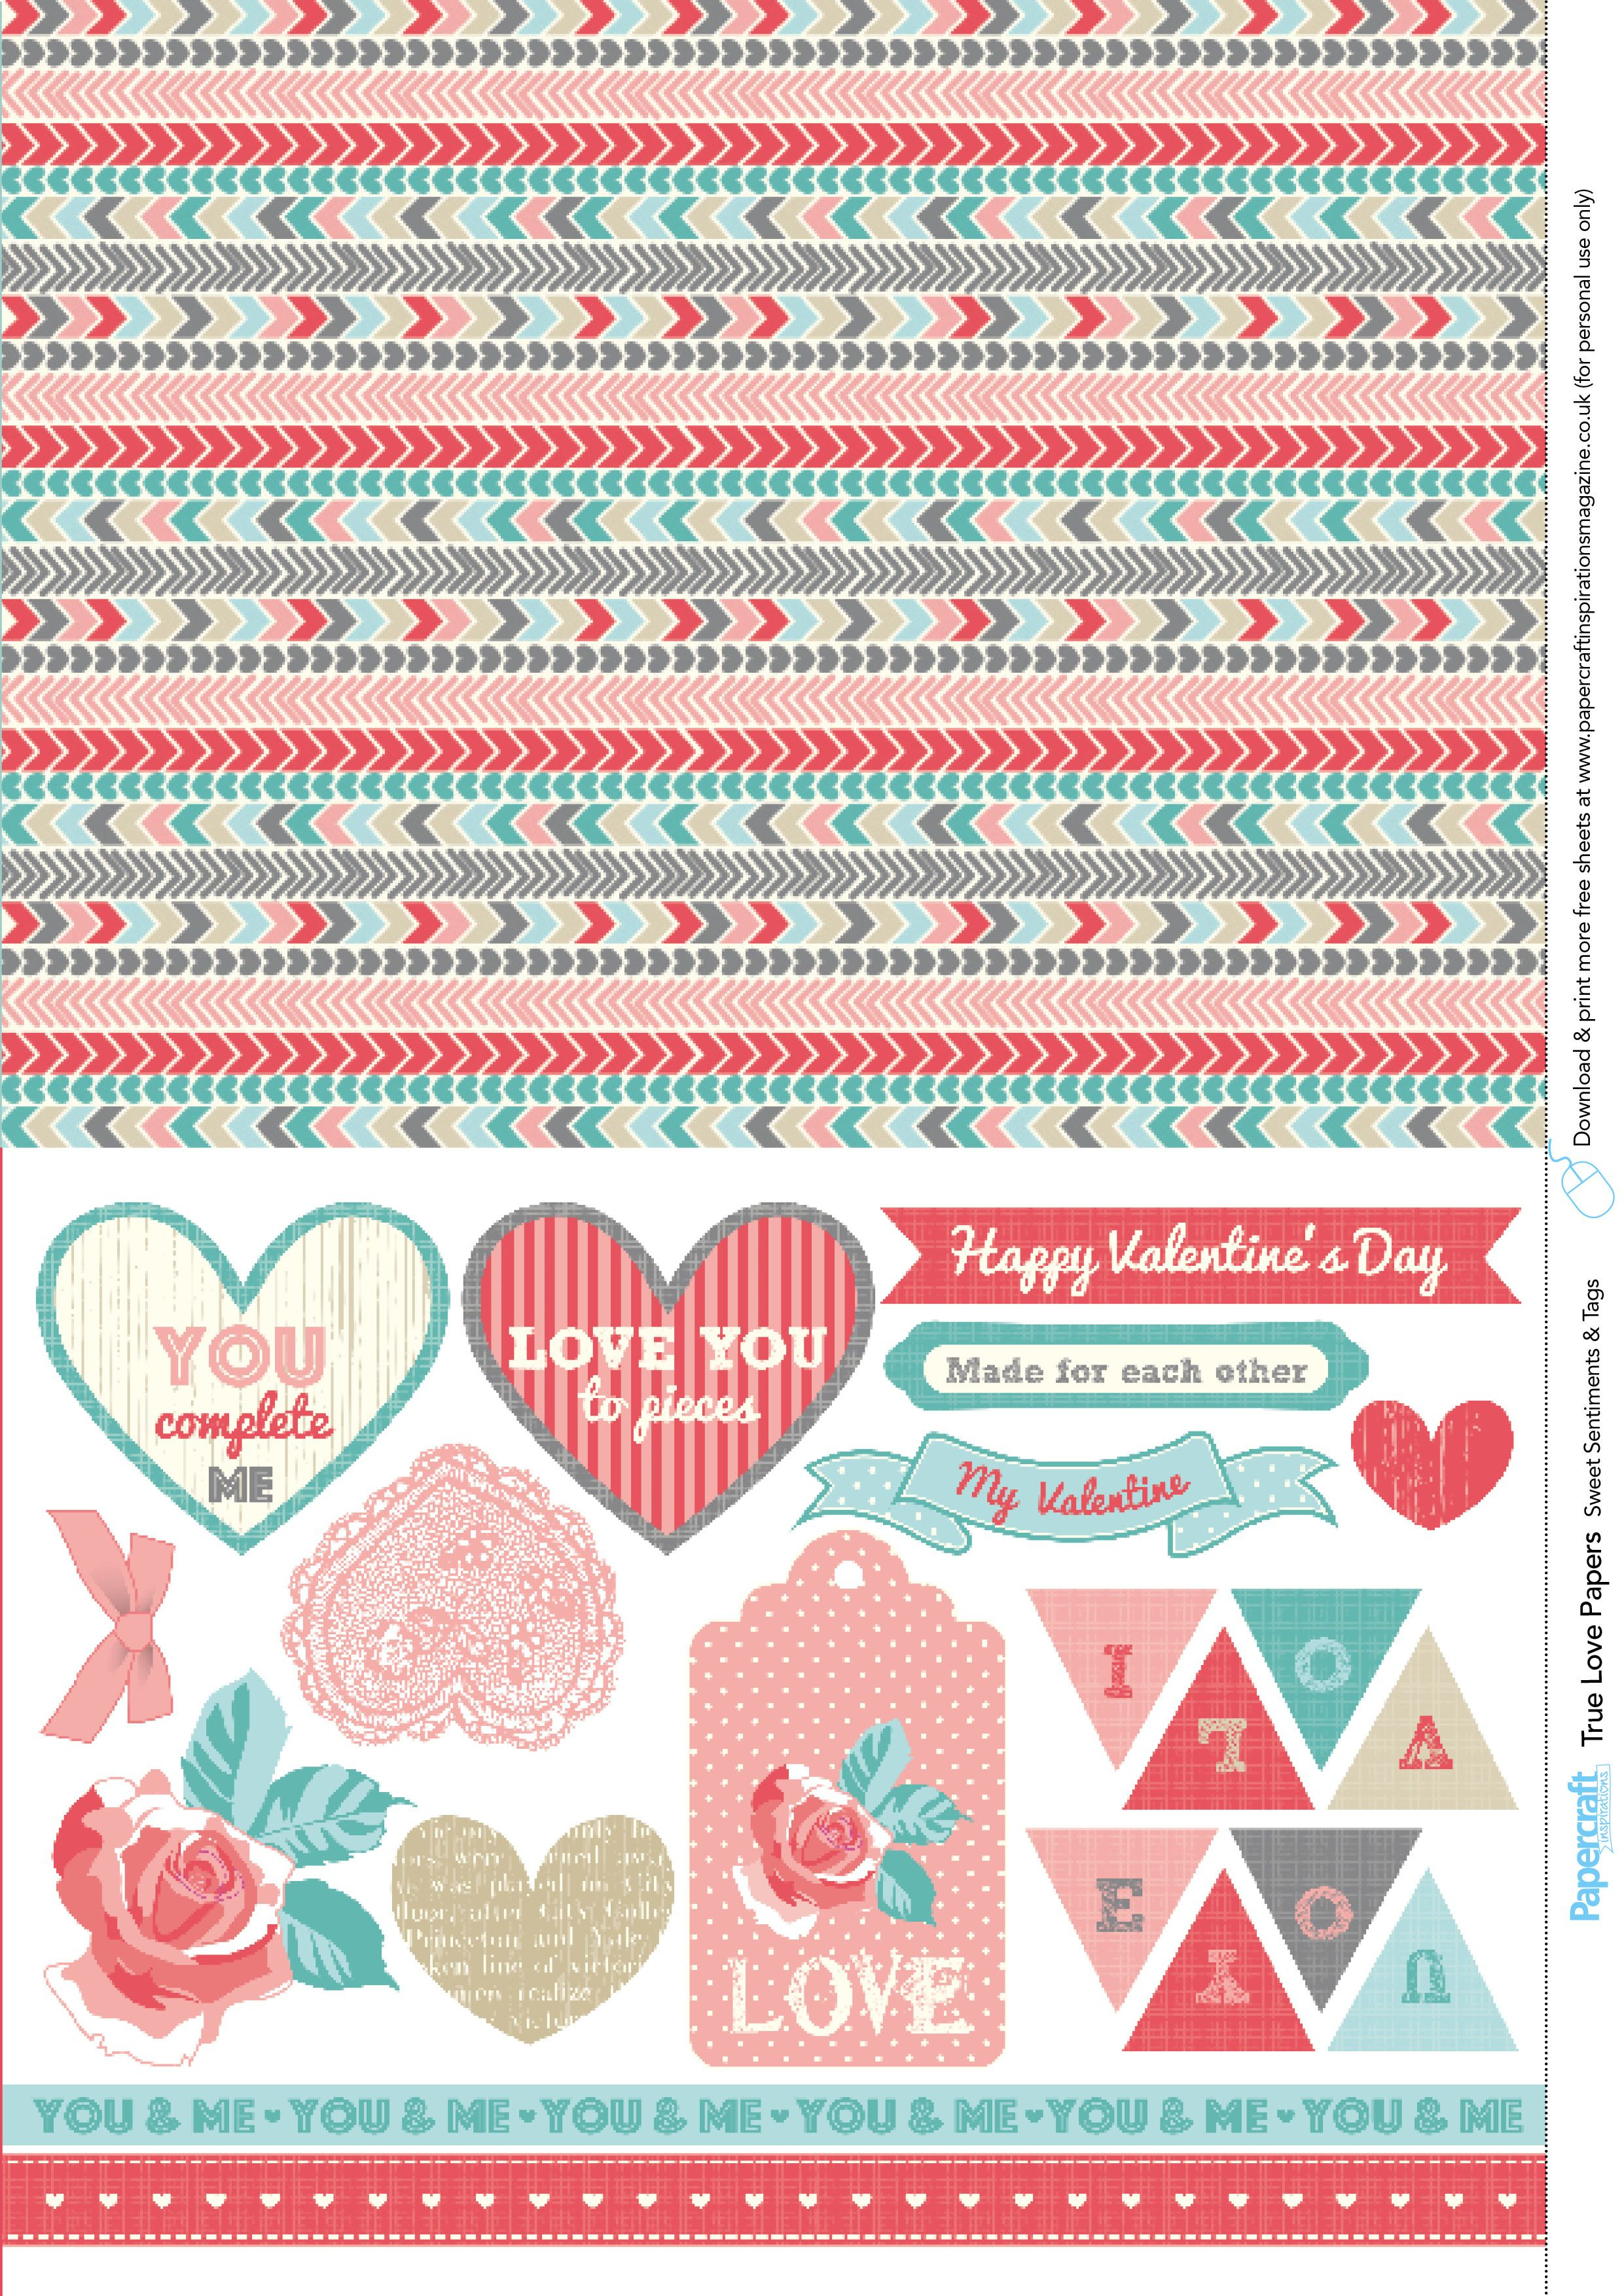 Valentine's Day Free Printable Papers | Papper Pattern | Pinterest - Free Printable Pattern Paper Sheets